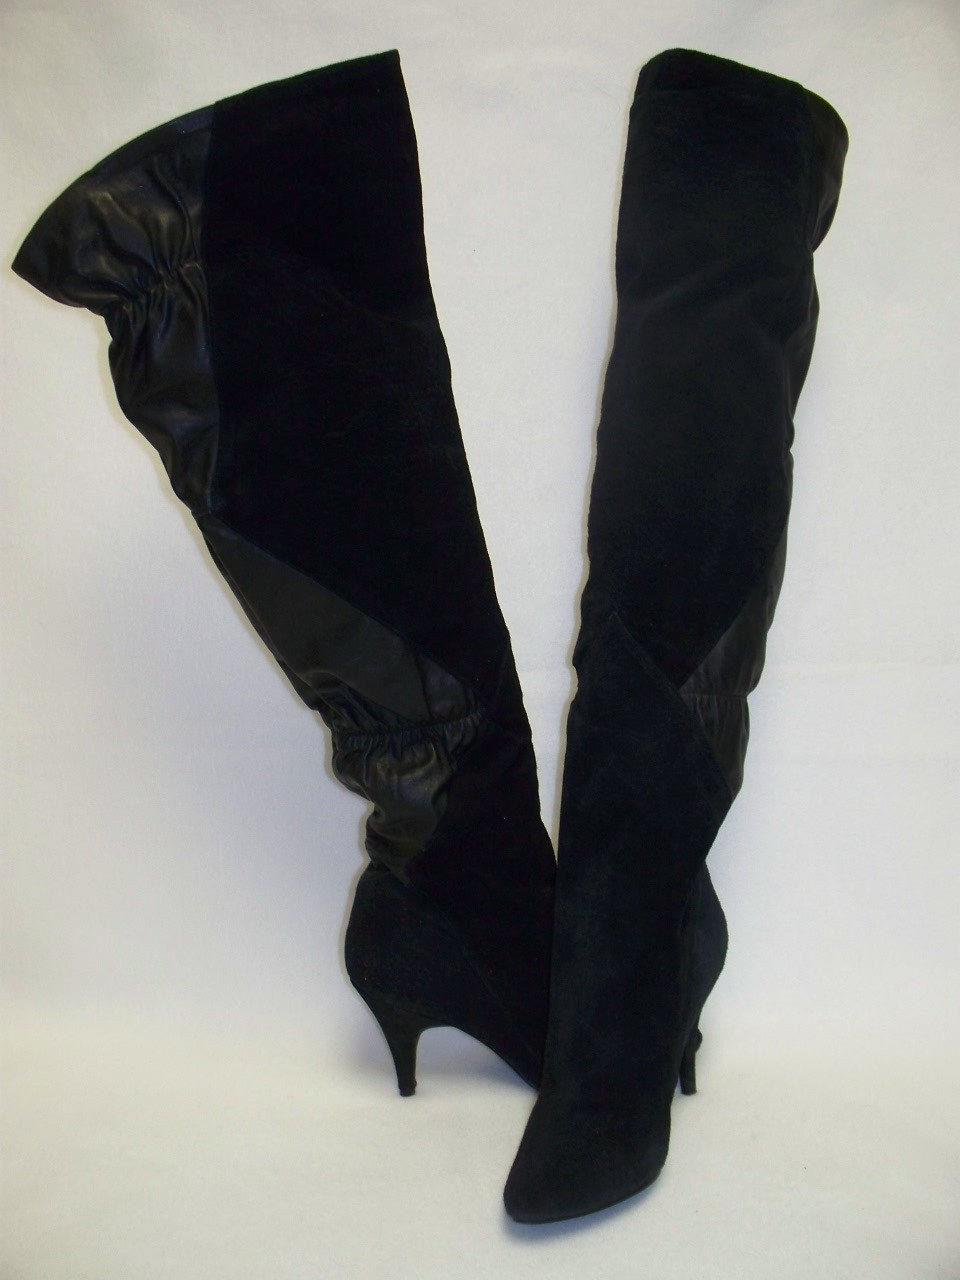 vintage 80s black leather thigh high boots otk pirate